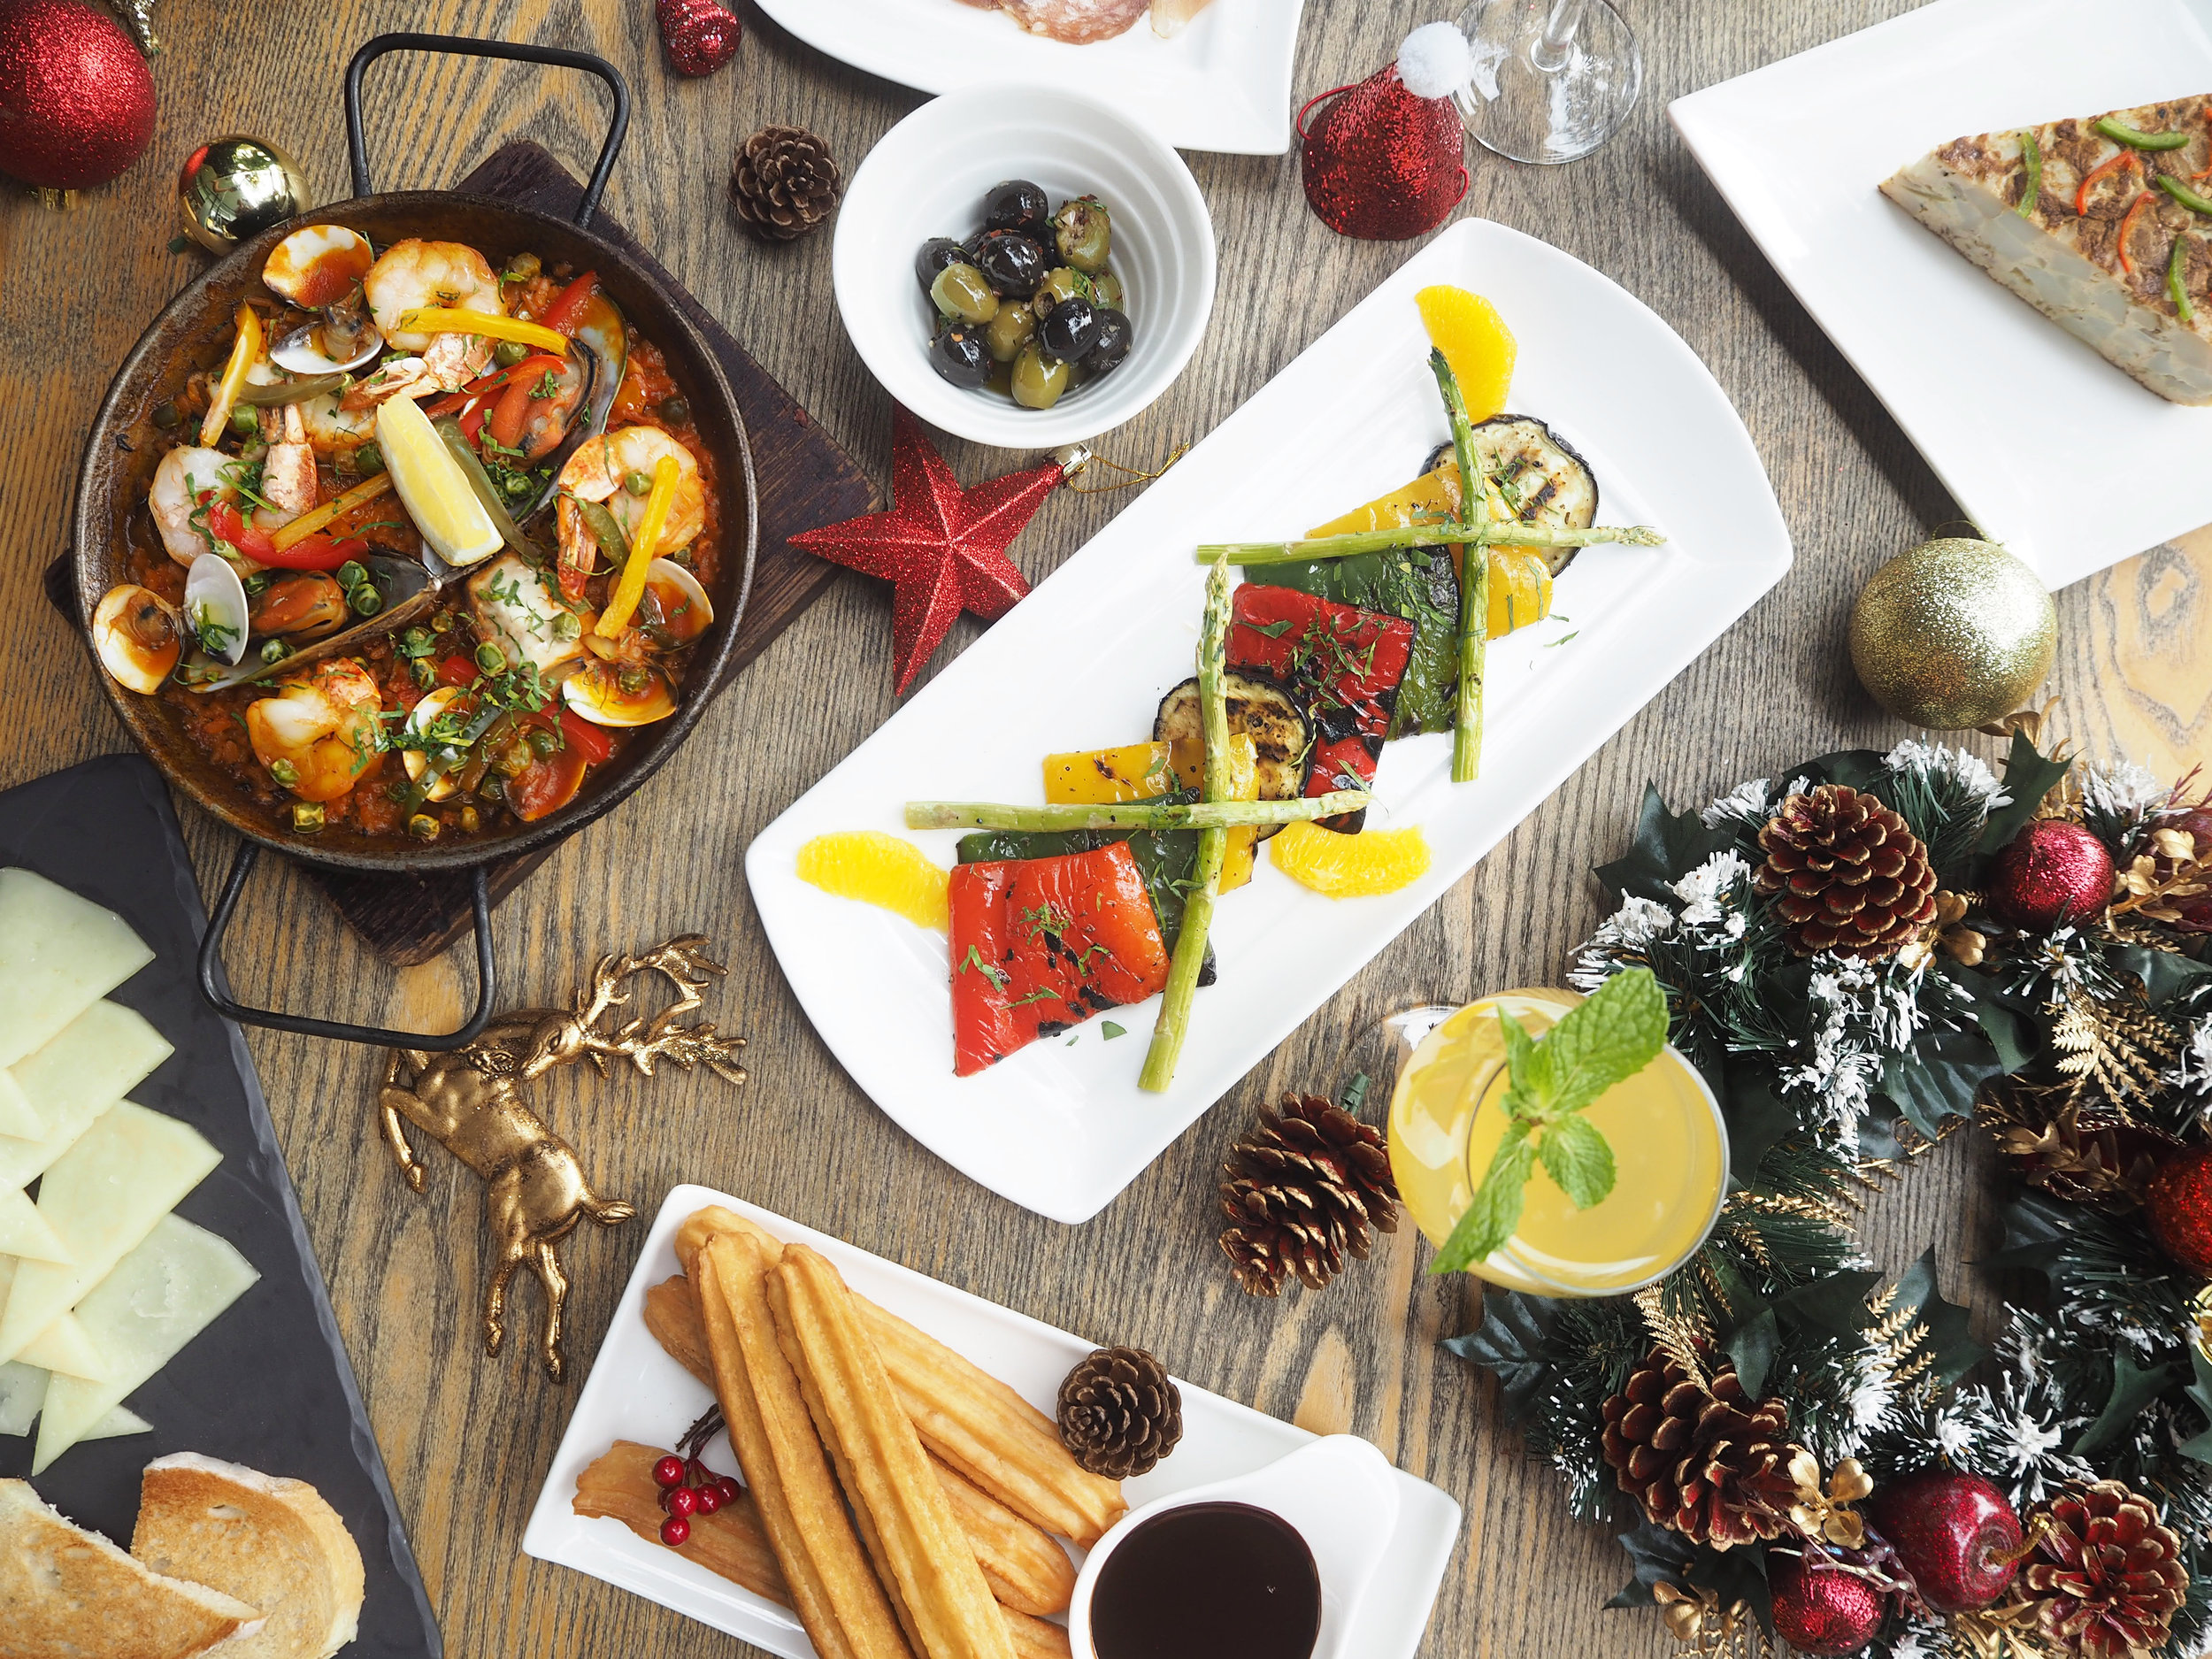 Sabio Tapas Bar /Sabio by the Sea - 2 complimentary Tapas of the day on top of each Festive Tapas Set ordered (worth S$28++)